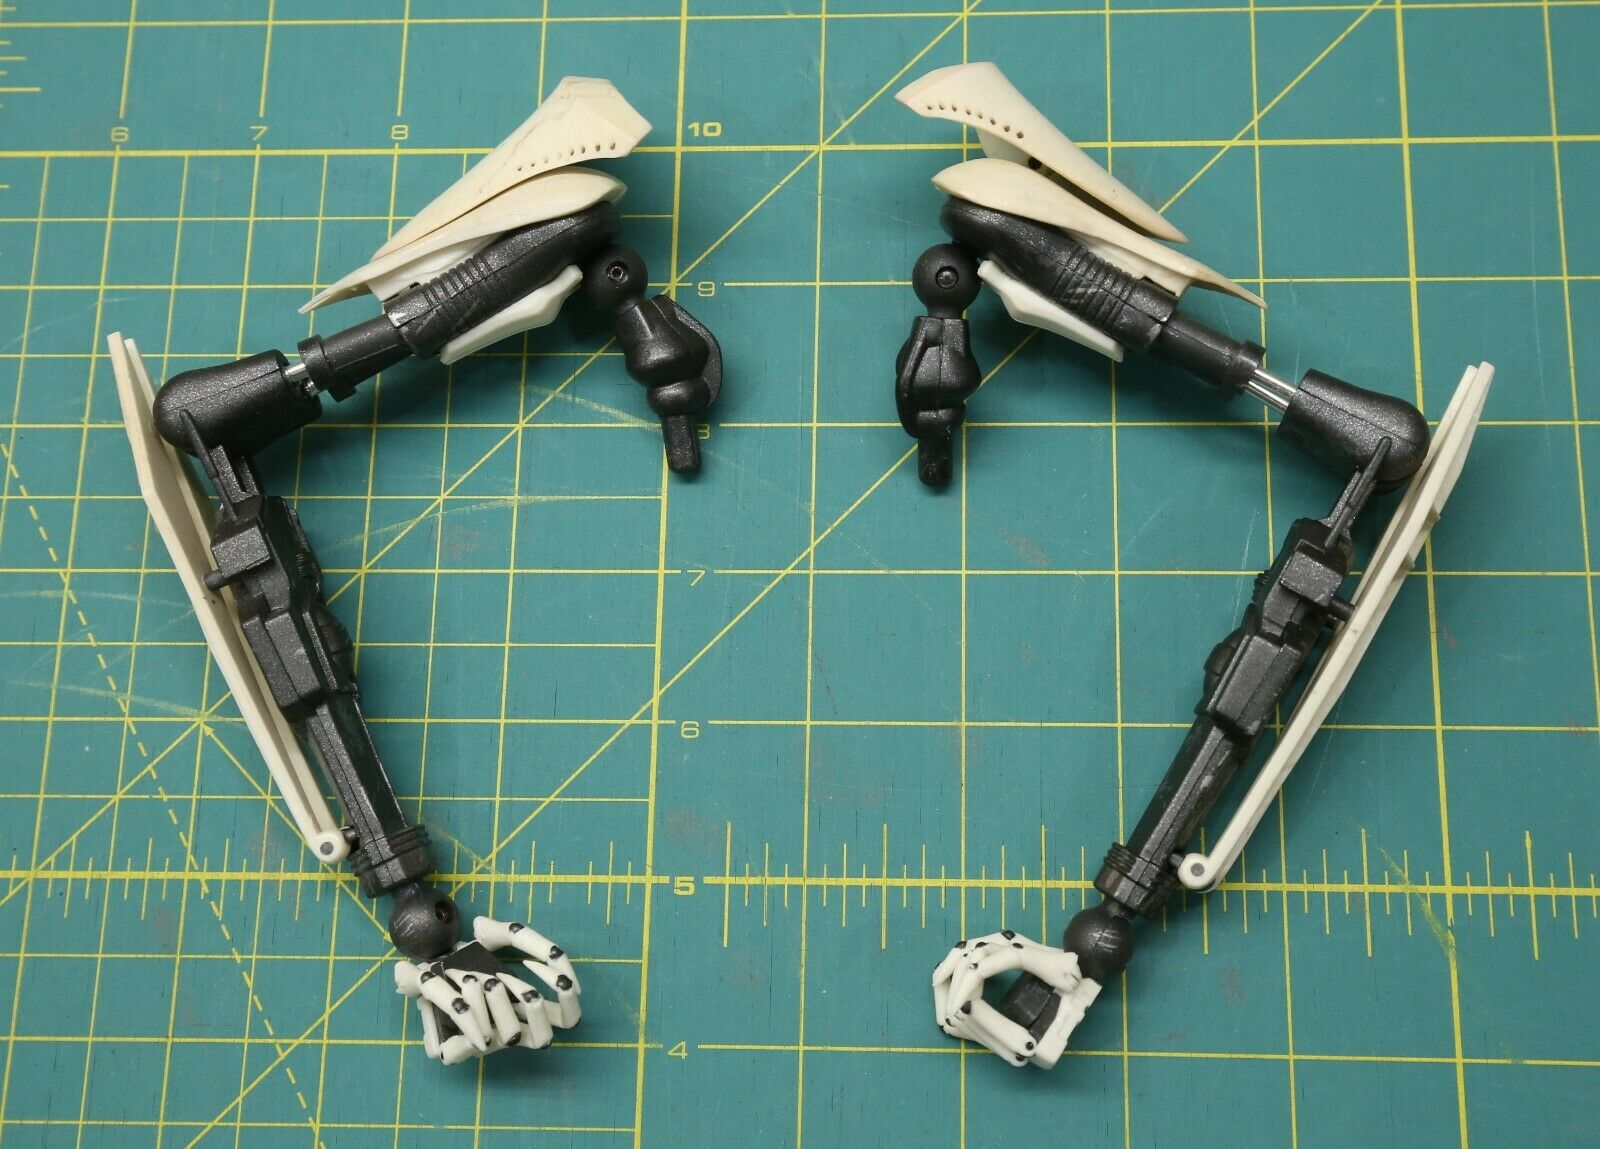 Sideshow 1/6 Scale General Grievous Joined Arm Set on eBay thumbnail